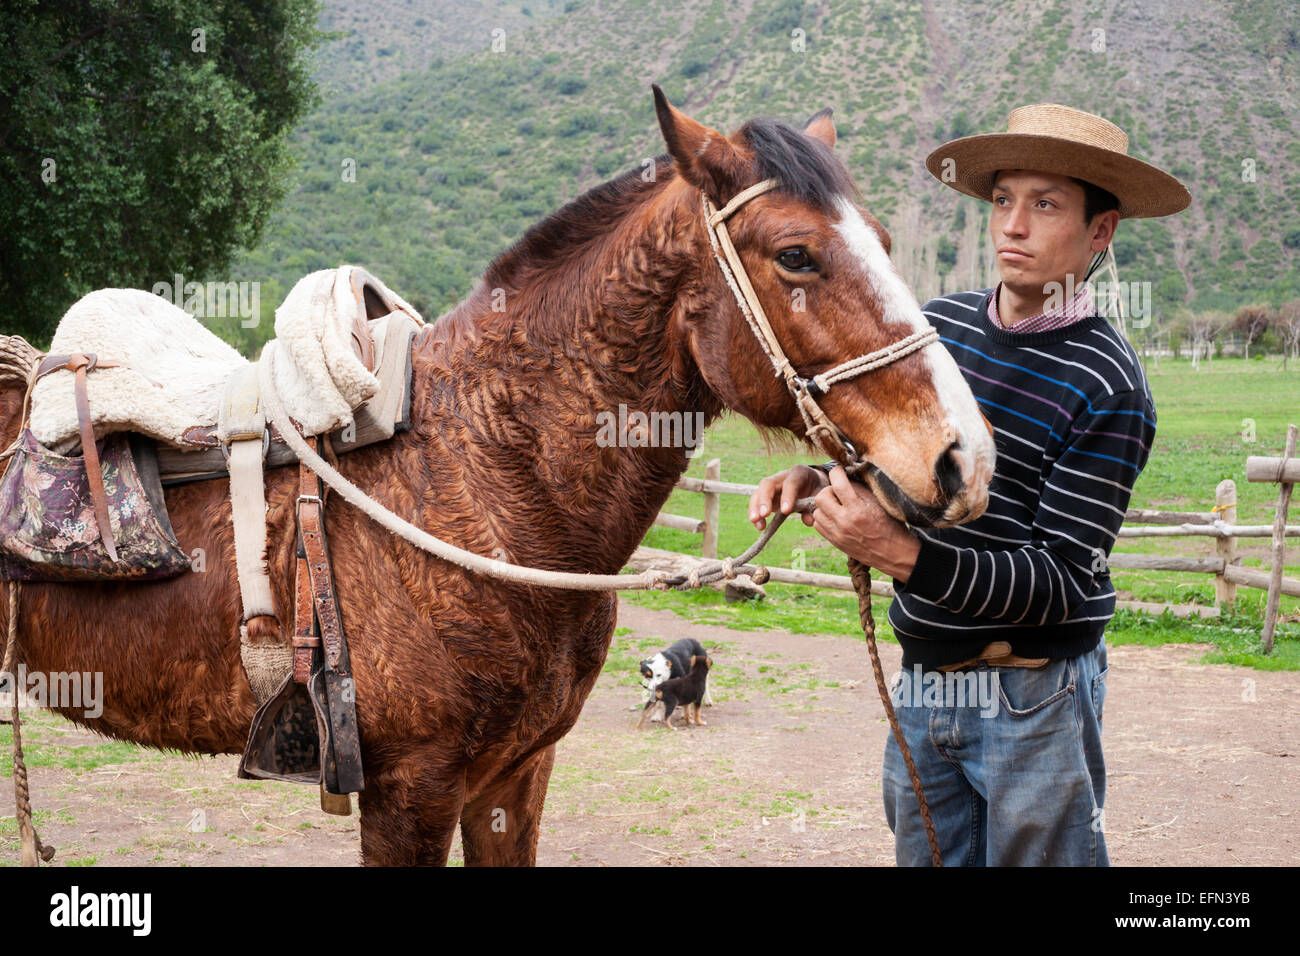 Chilean cowboy adjusts the reins on his horse on a ranch in El Toyo region of Cajon del Maipo, Chile, South America - Stock Image